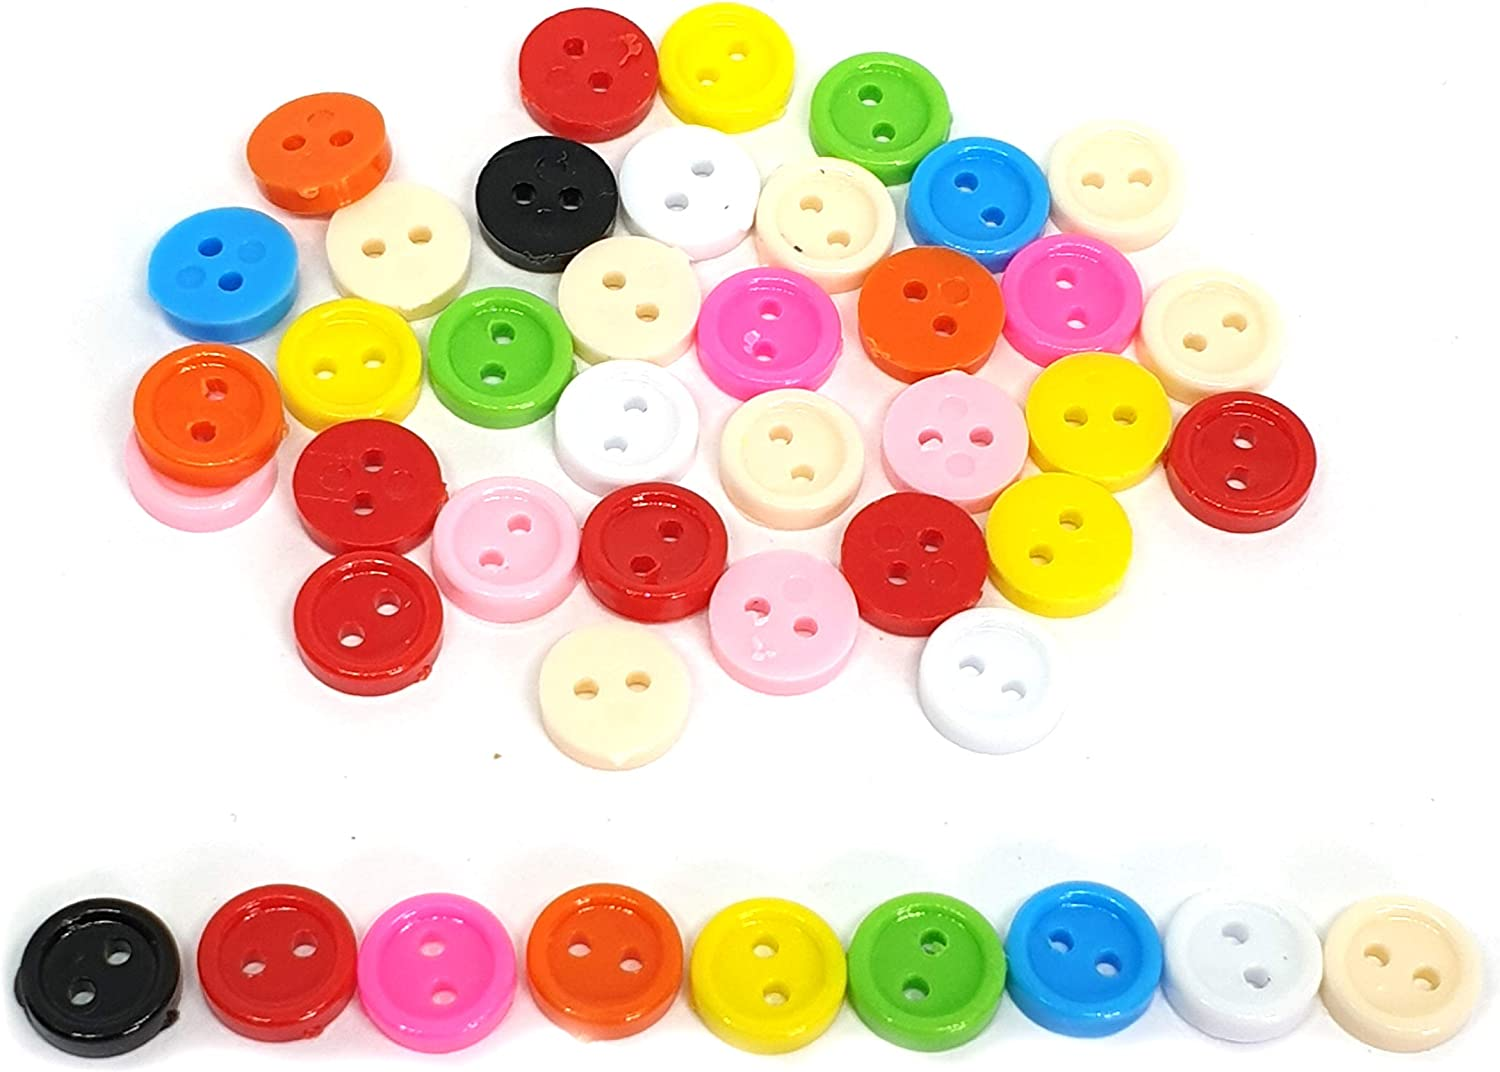 100 pcs Tiny Buttons micro buttons 2 holes size 6mm mix yellow pink orange